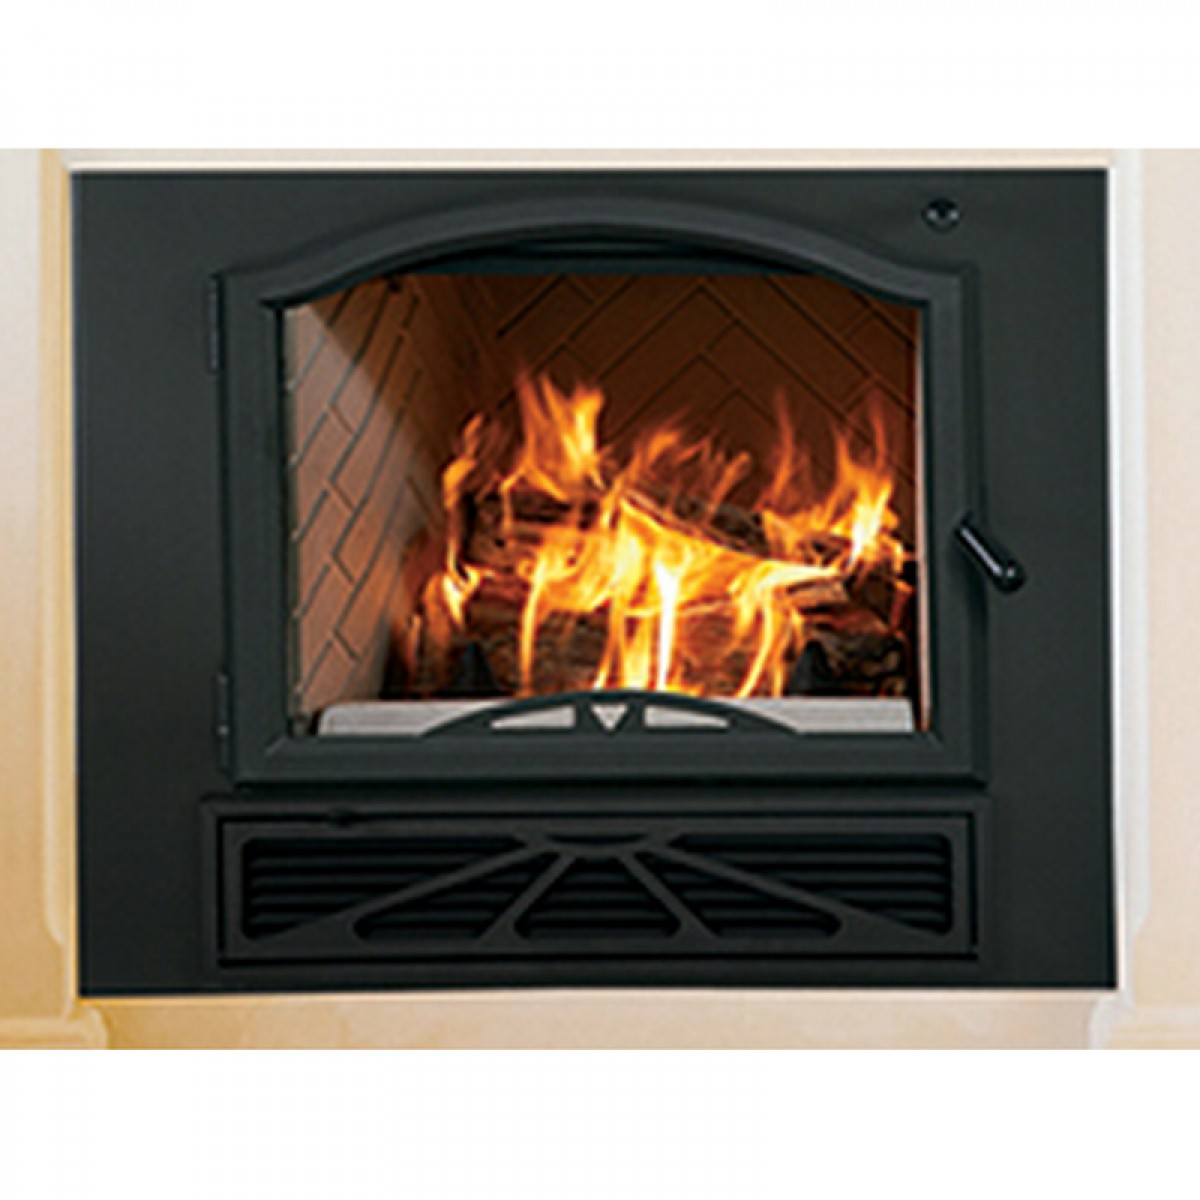 Ihp Superior Wrt4820ws Epa Phase Ii Fireplaces Traditional White Smooth